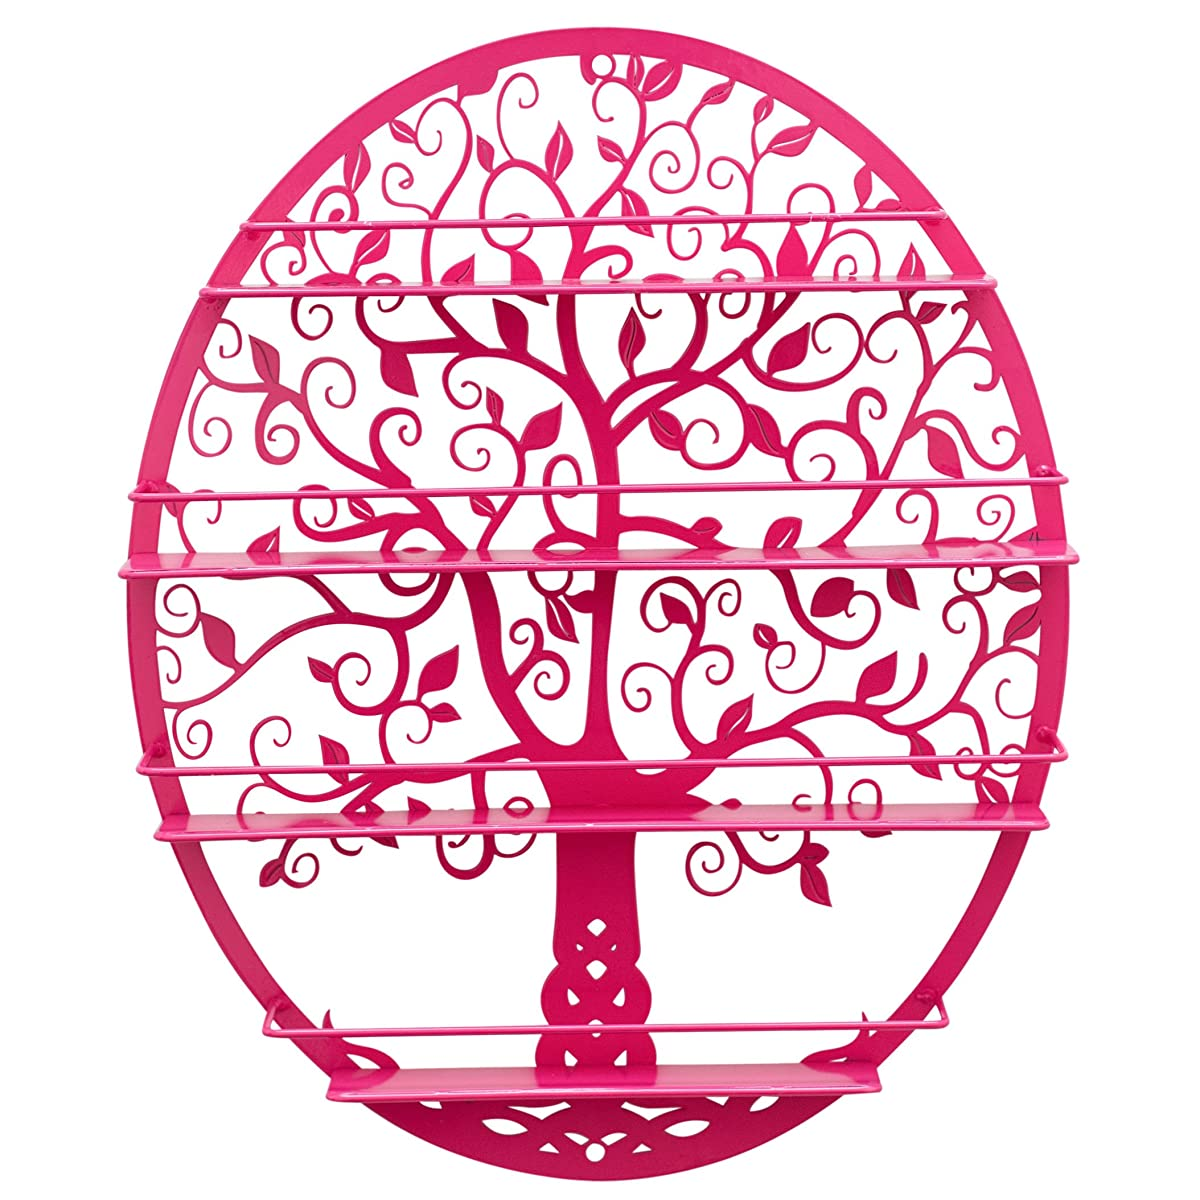 Essential Oils & Nail Polish Storage - Display Holder Organizer Shelf from SoCal Buttercup - Oval Black Metal with Tree Silhouette - Wall Mounted Round Rack Oil Bottle Storage (Pink)